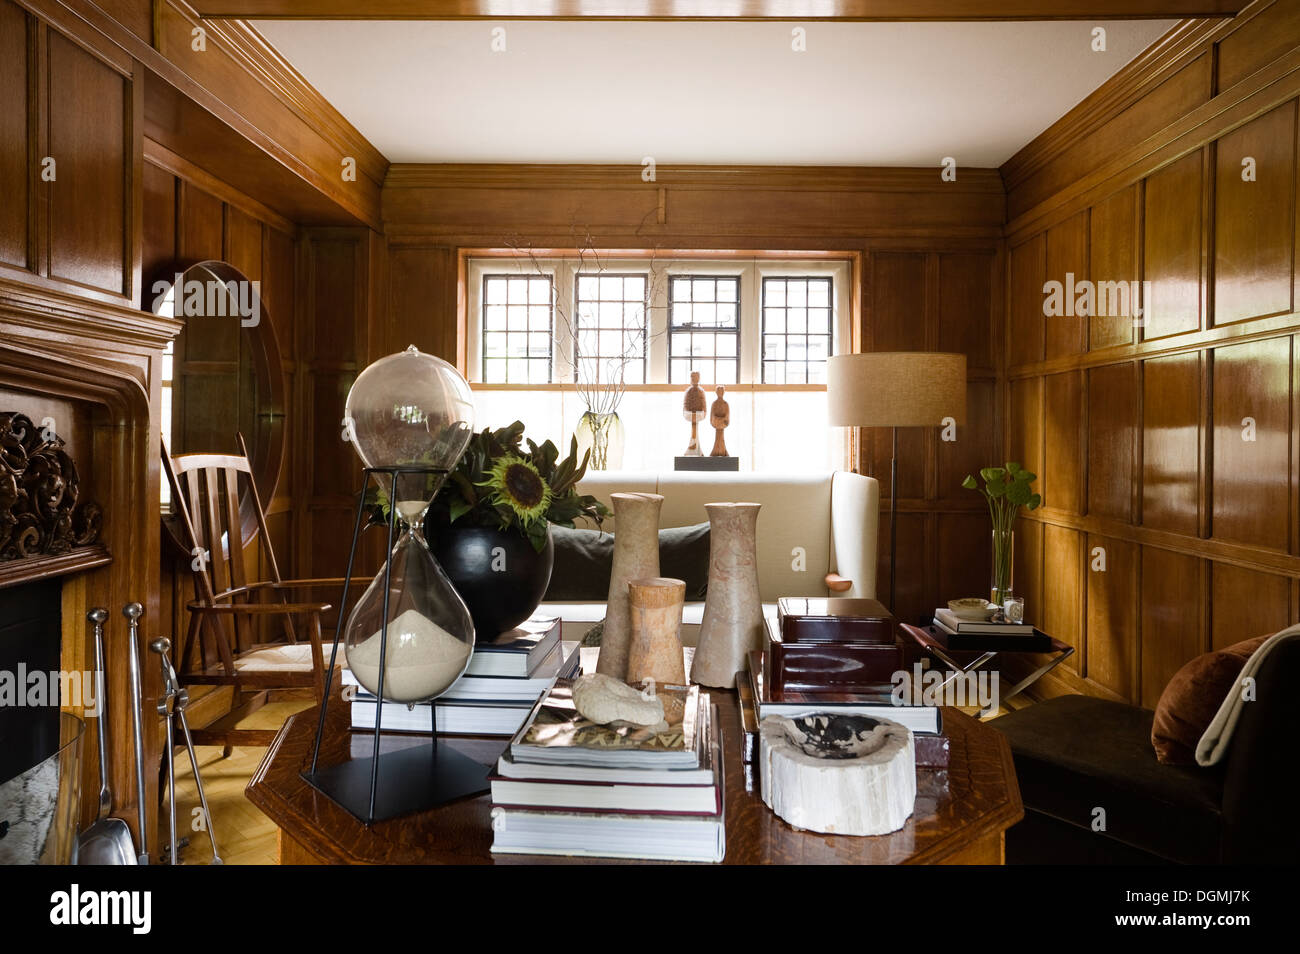 Stunning original wooden paneling in Arts & Crafts home - Stock Image